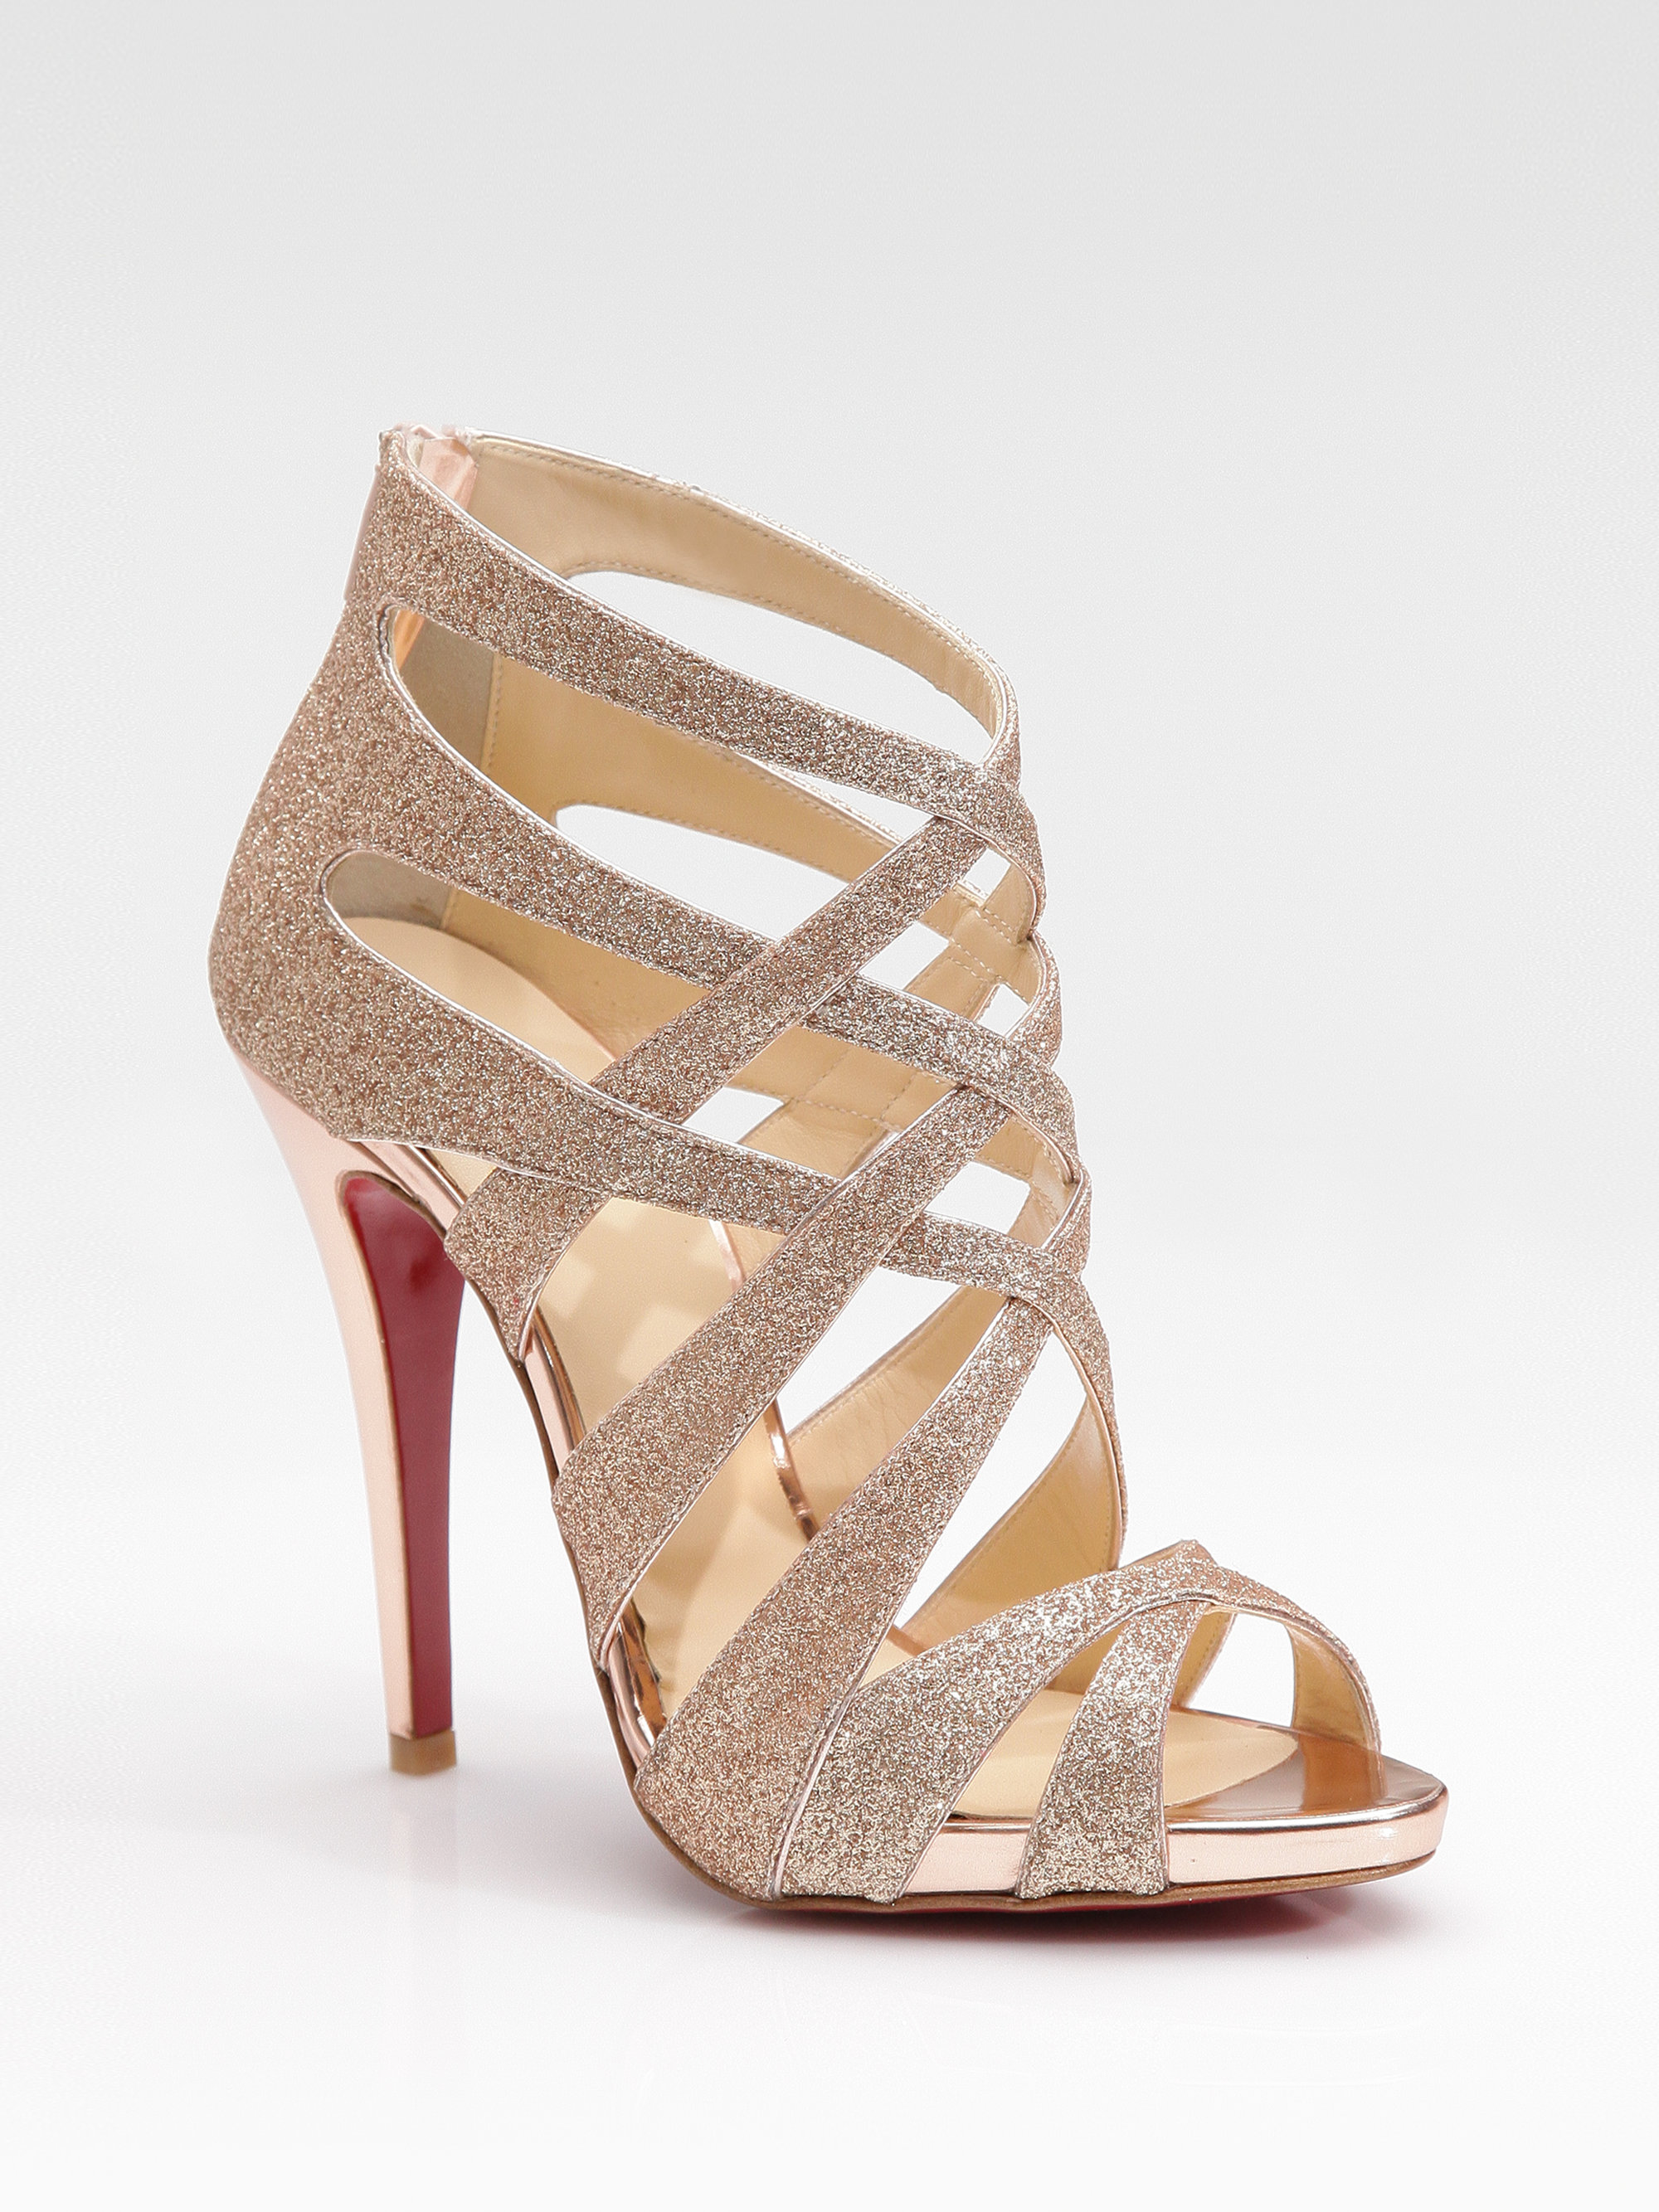 Christian louboutin Balota Glitter Leather Strappy Sandals in ...